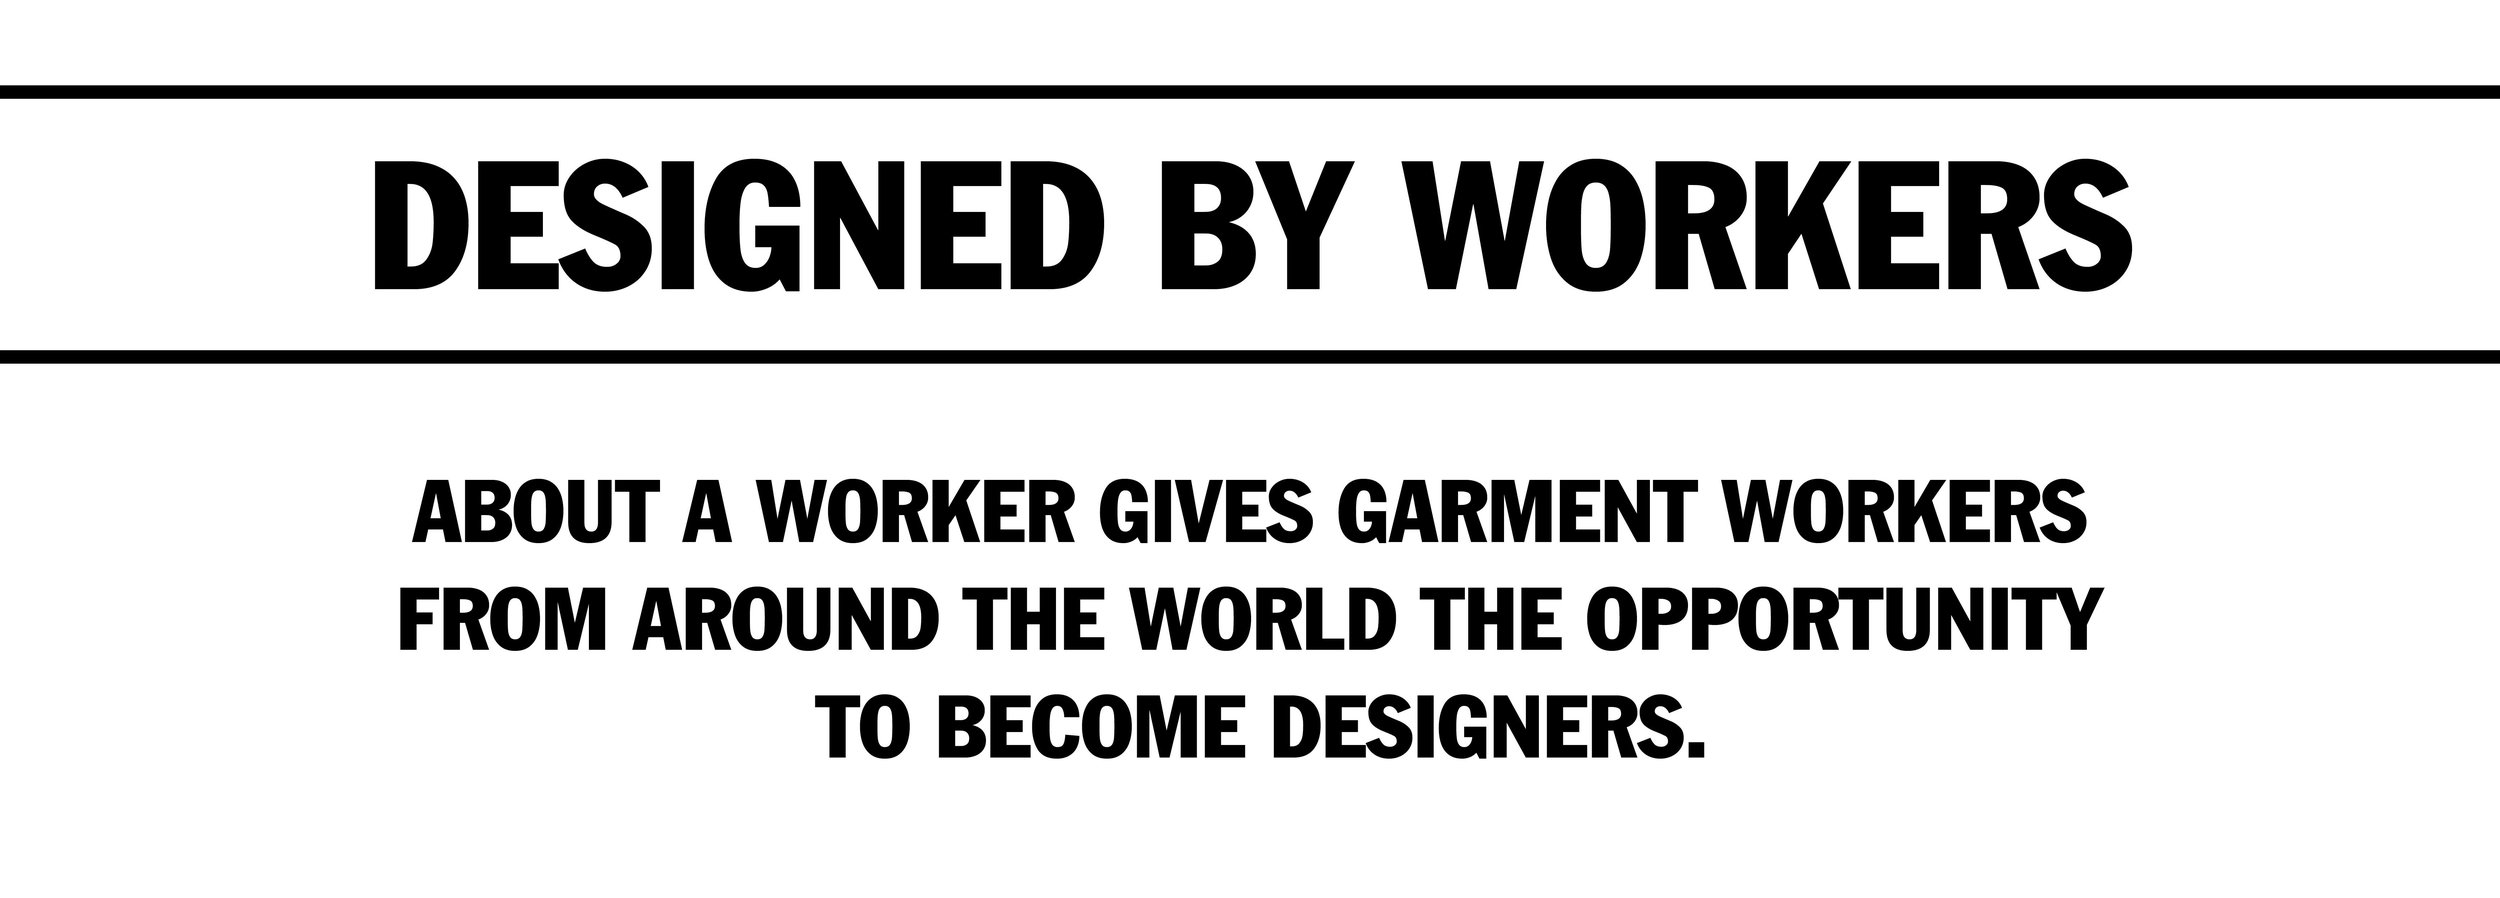 DESIGNED BY WORKERSn.jpg